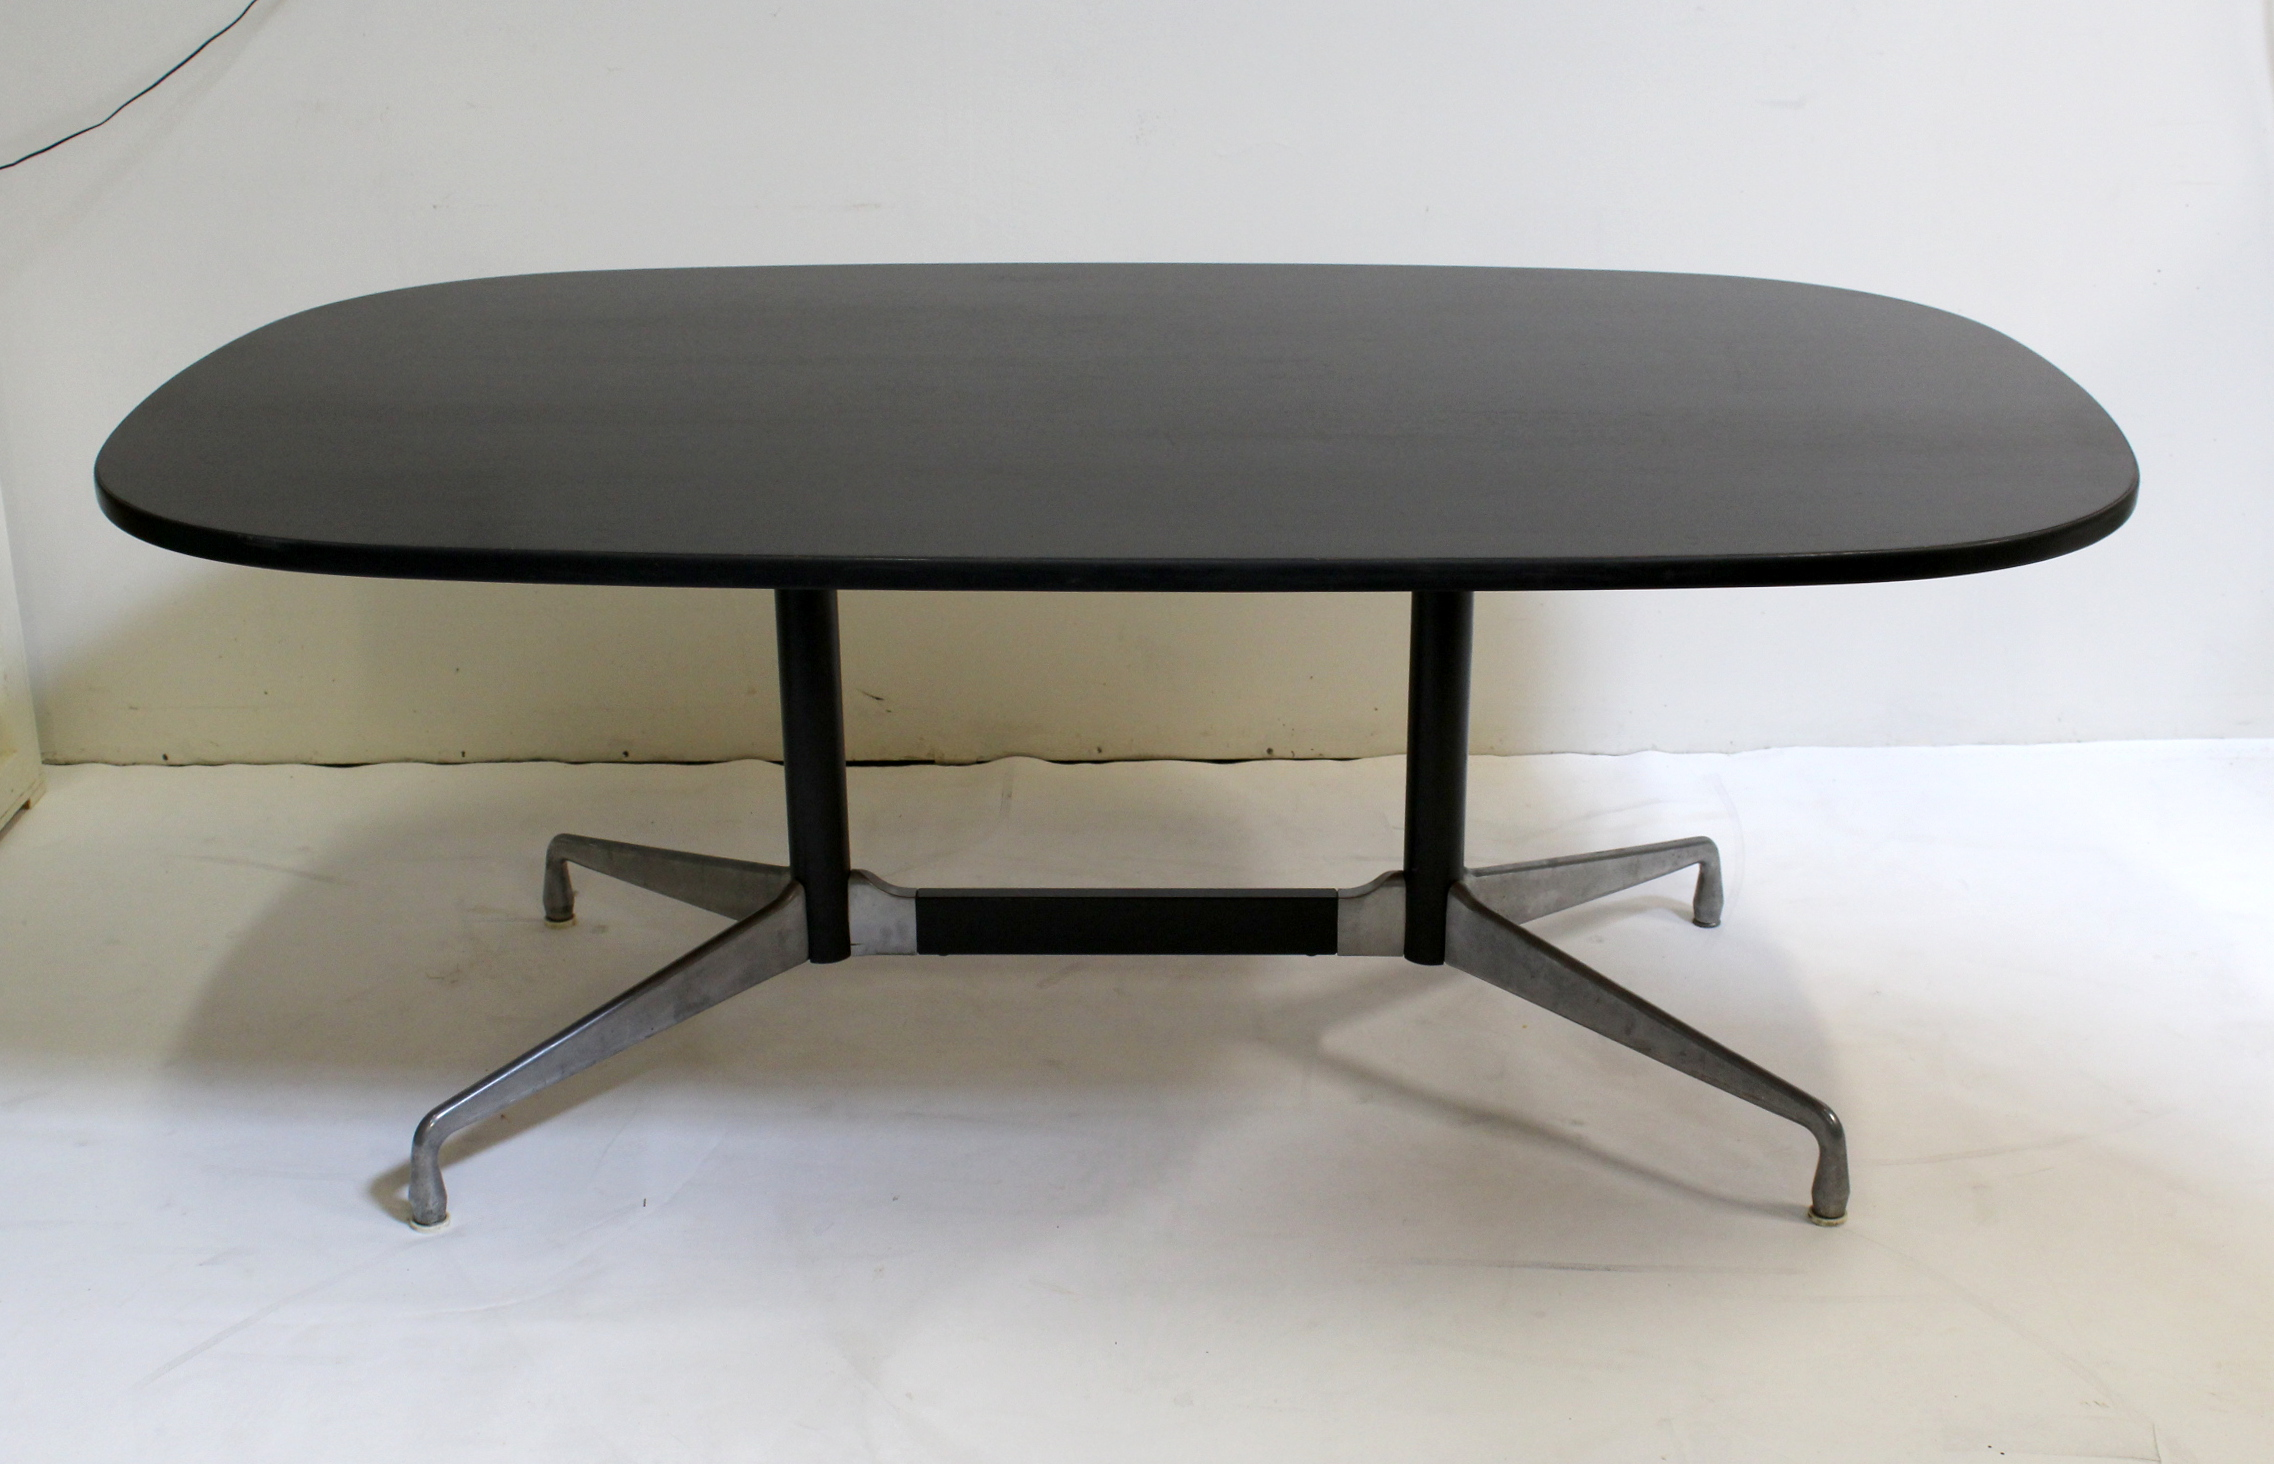 Herman Miller Eames Conference Table MidCentury Modern Eames For - Eames oval conference table